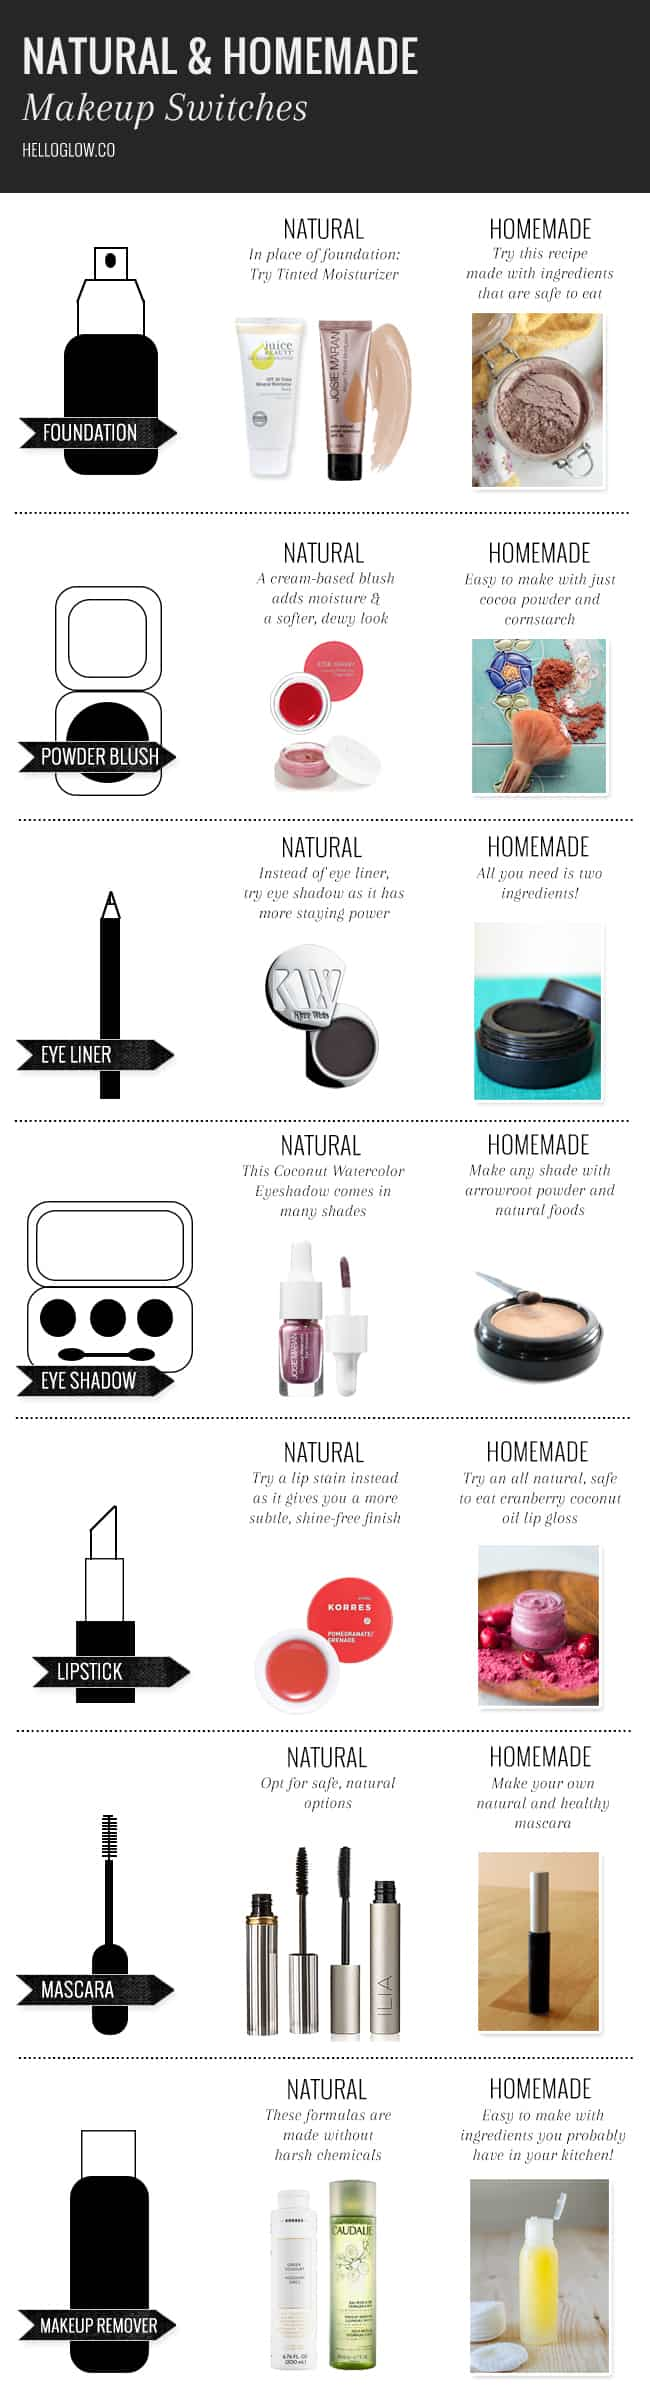 Natural and Homemade Makeup Switches